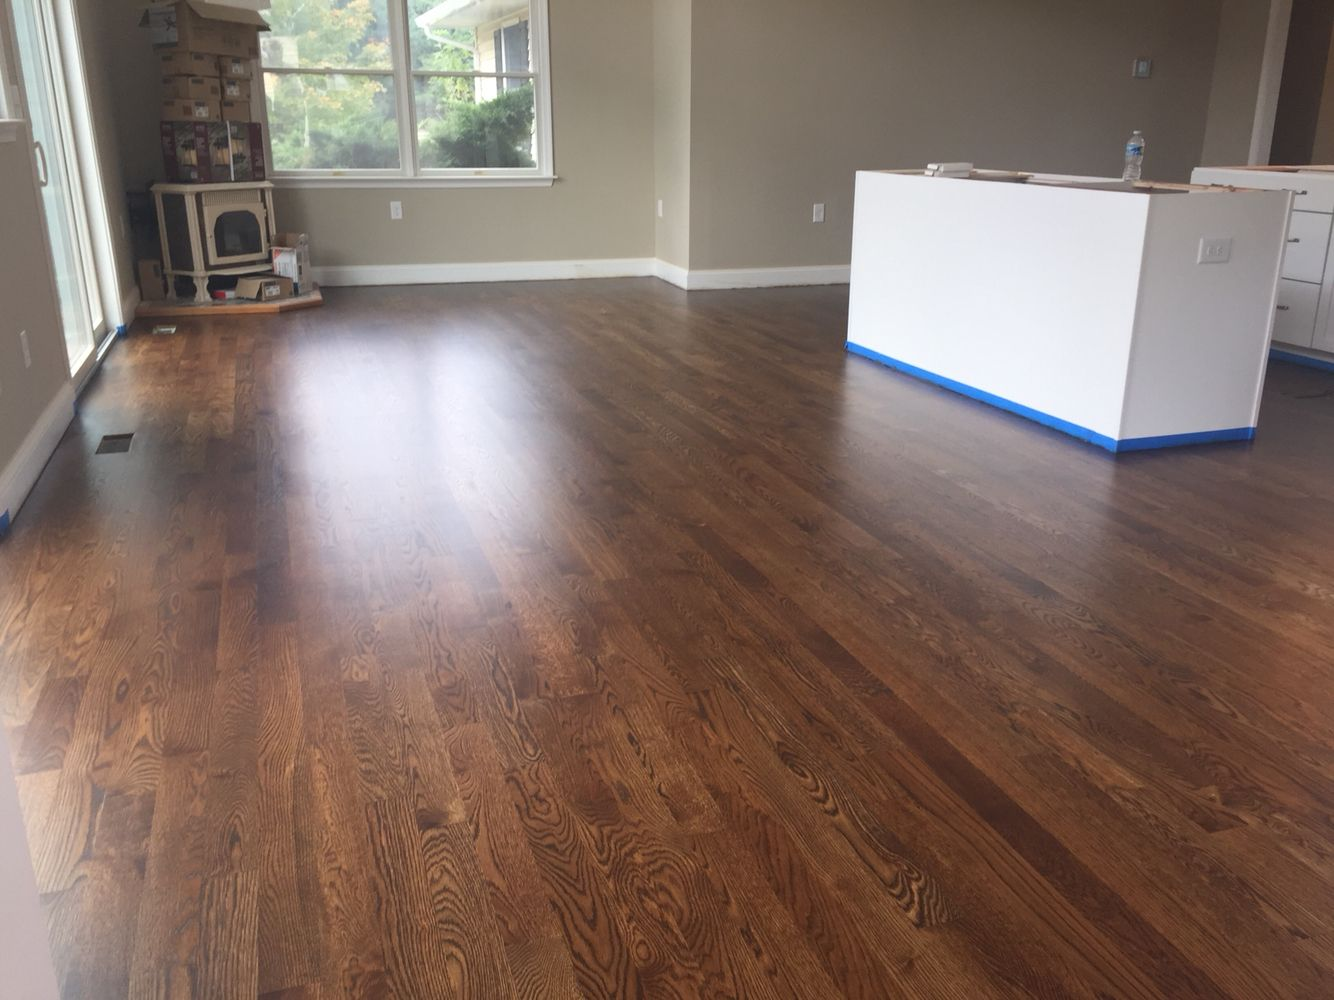 19+ Where to buy duraseal stain near me ideas in 2021